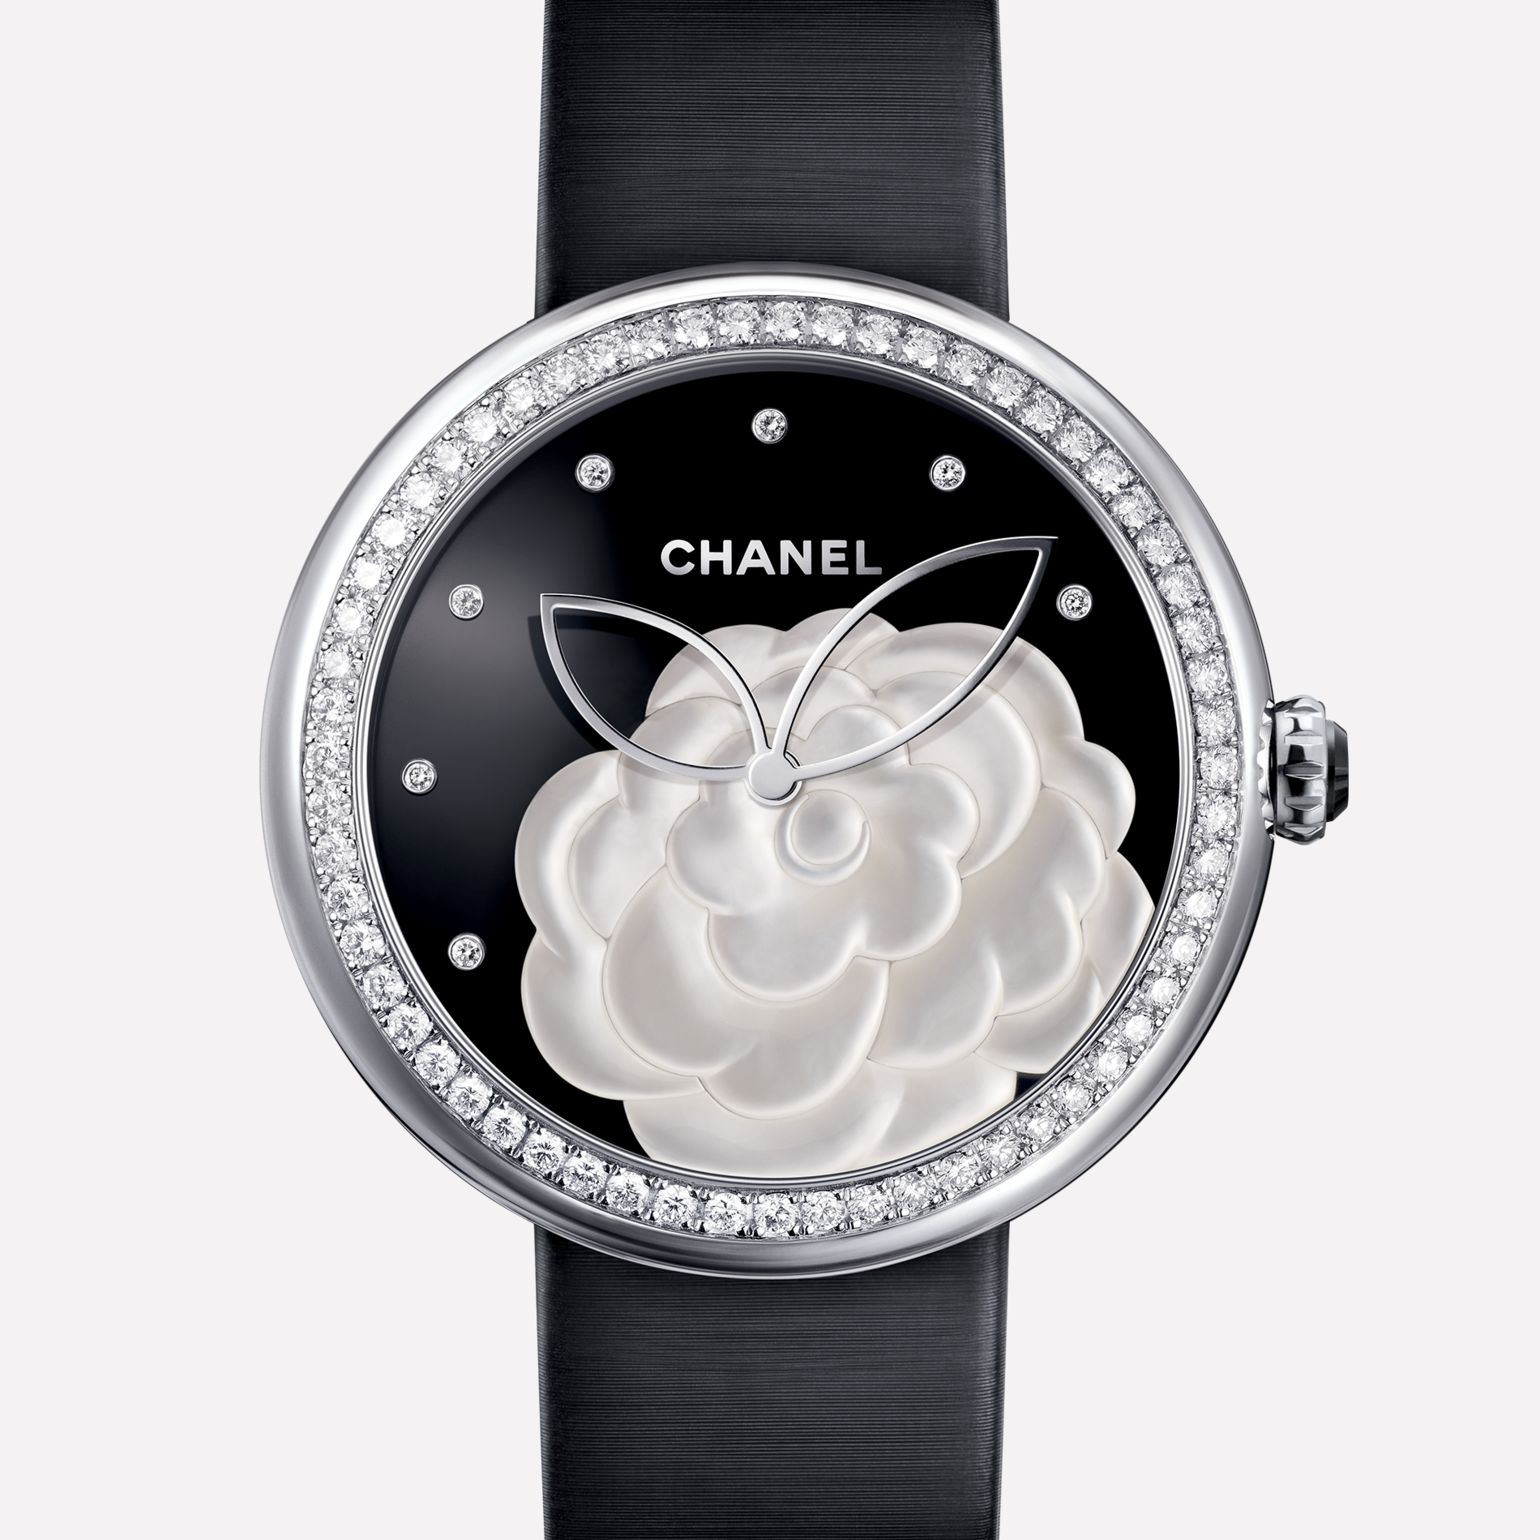 Mademoiselle Privé Watch Pearl marquetry camellia, onyx dial, diamond indicators